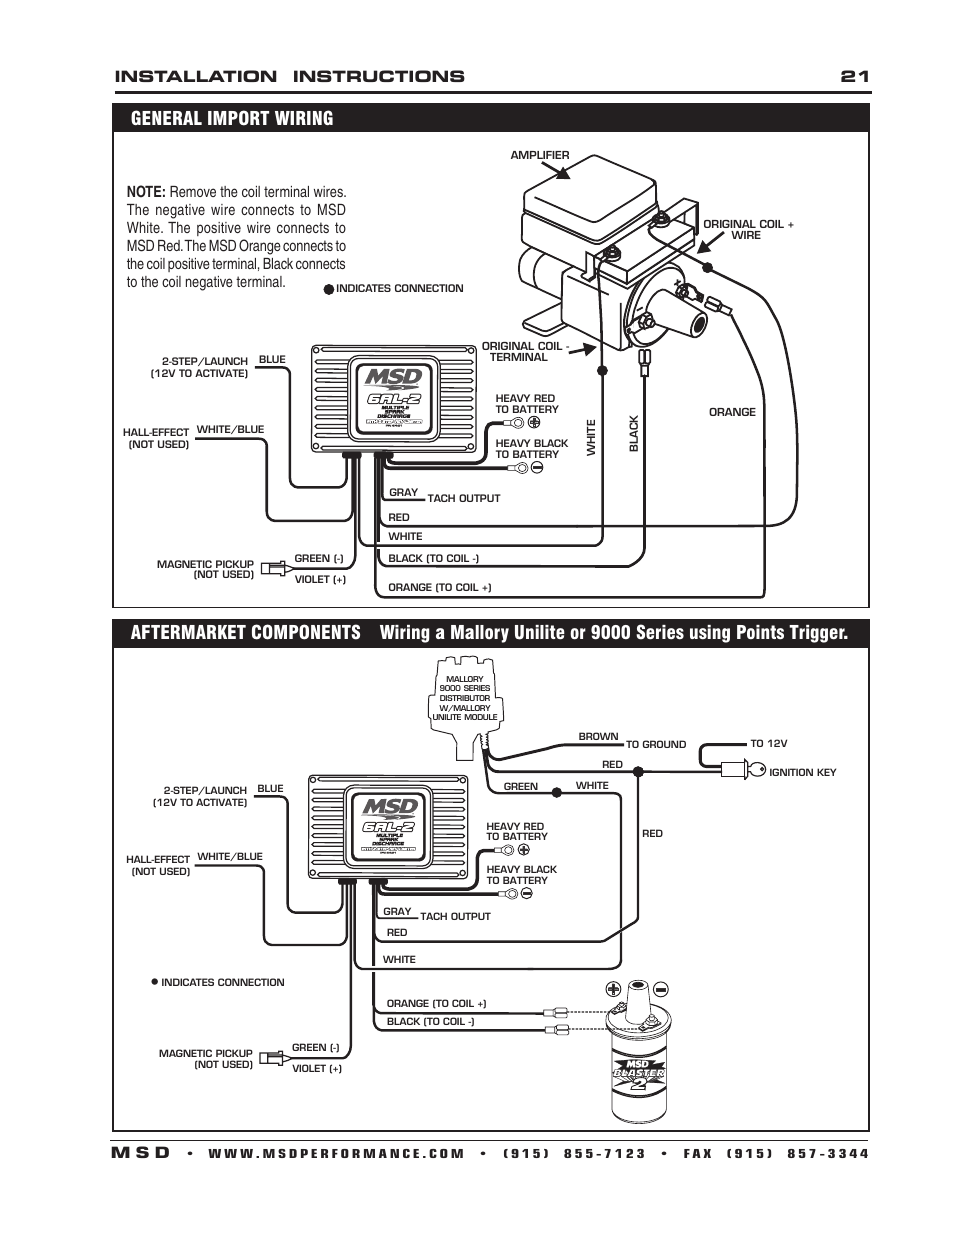 hight resolution of installation instructions 21 m s d msd 6421 6al 2 ignition control installation user manual